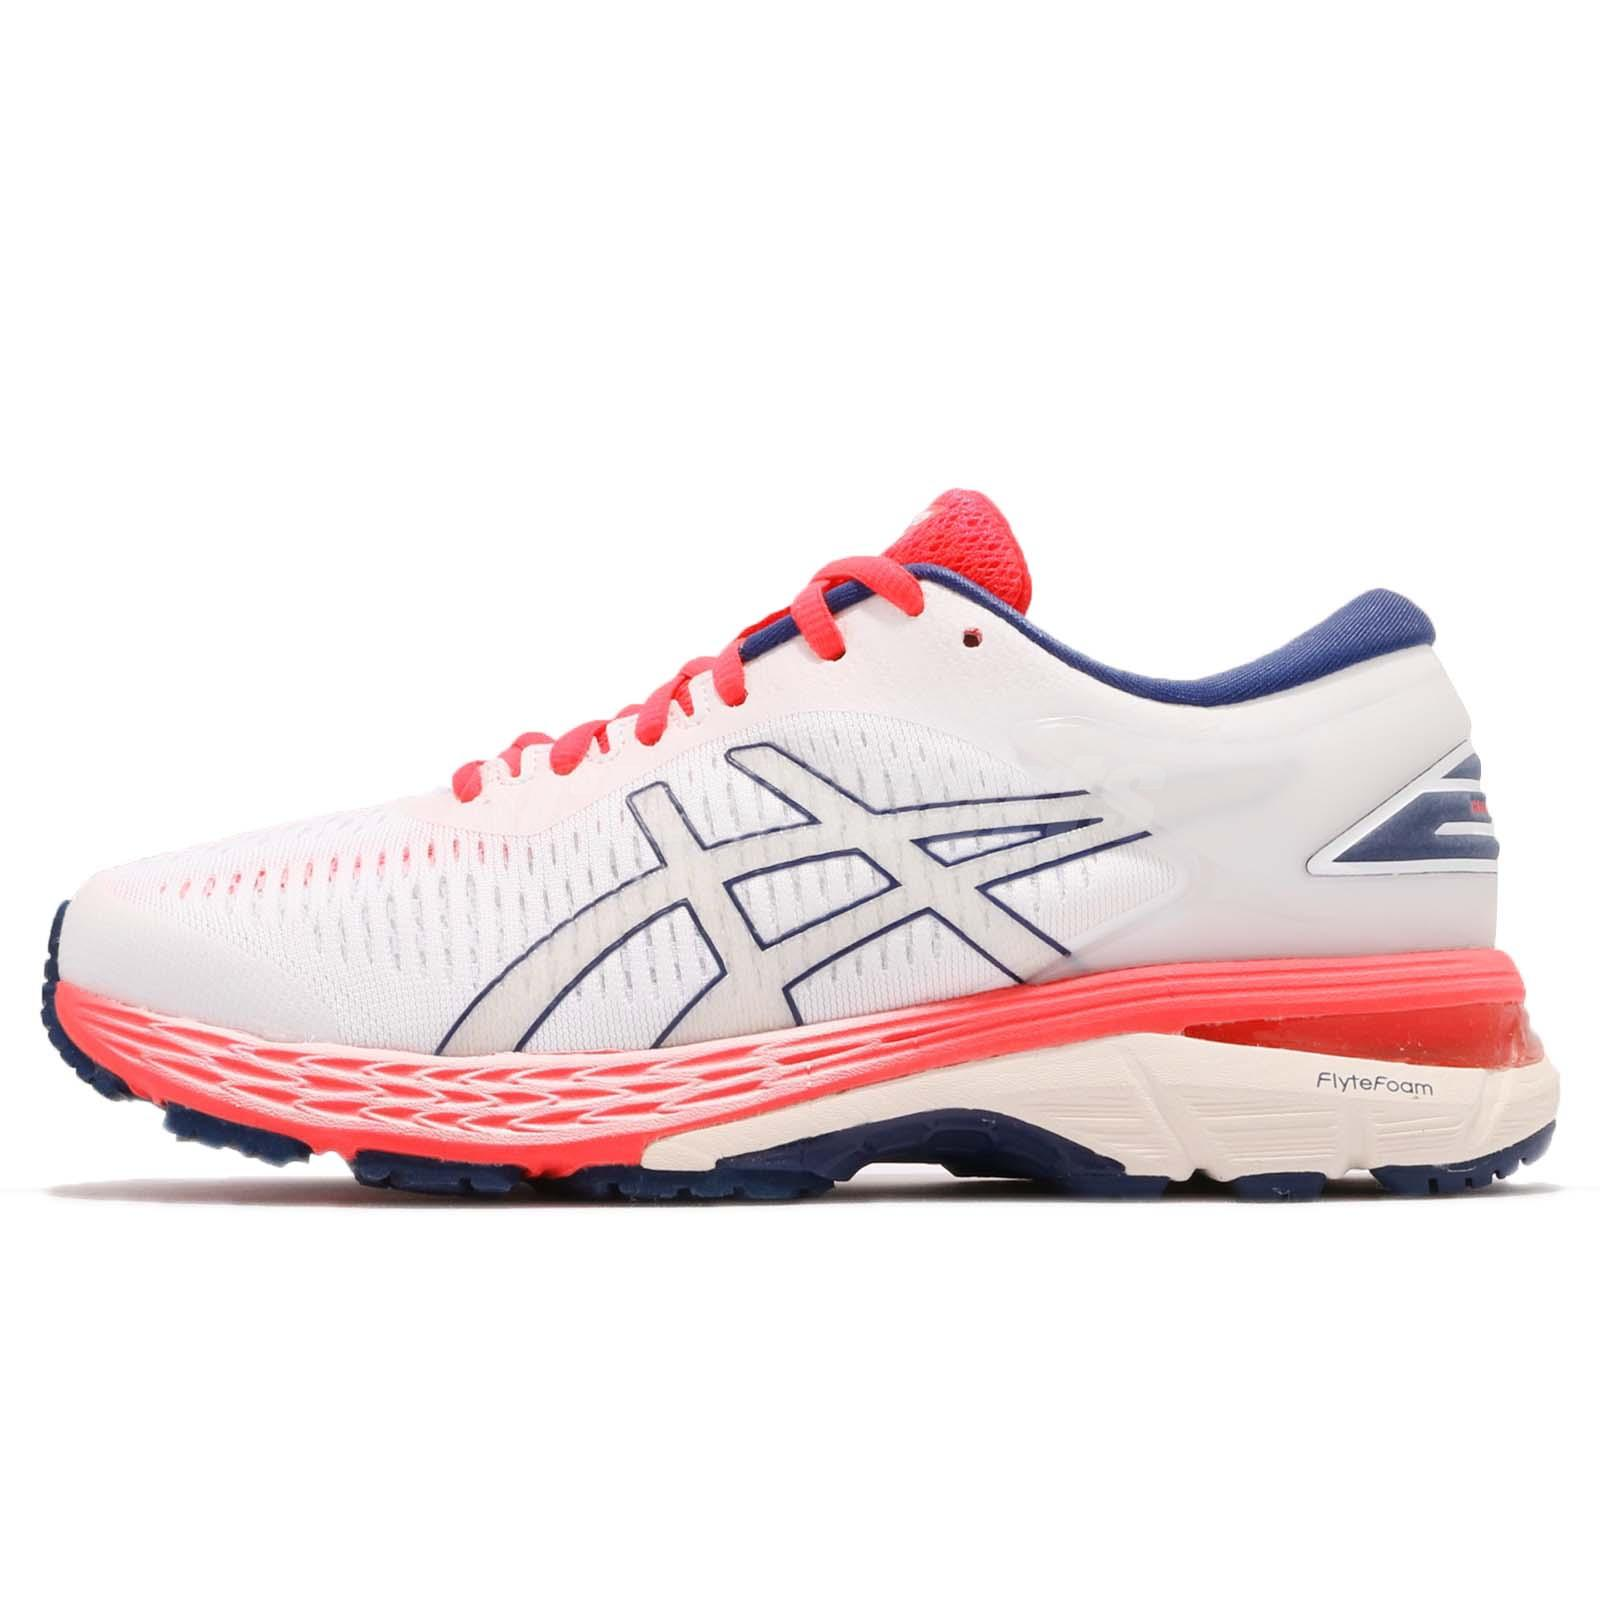 03ca72b95b Details about Asics Gel-Kayano 25 D Wide White Pink Blue Womens Running  Shoes 1012A03-2100